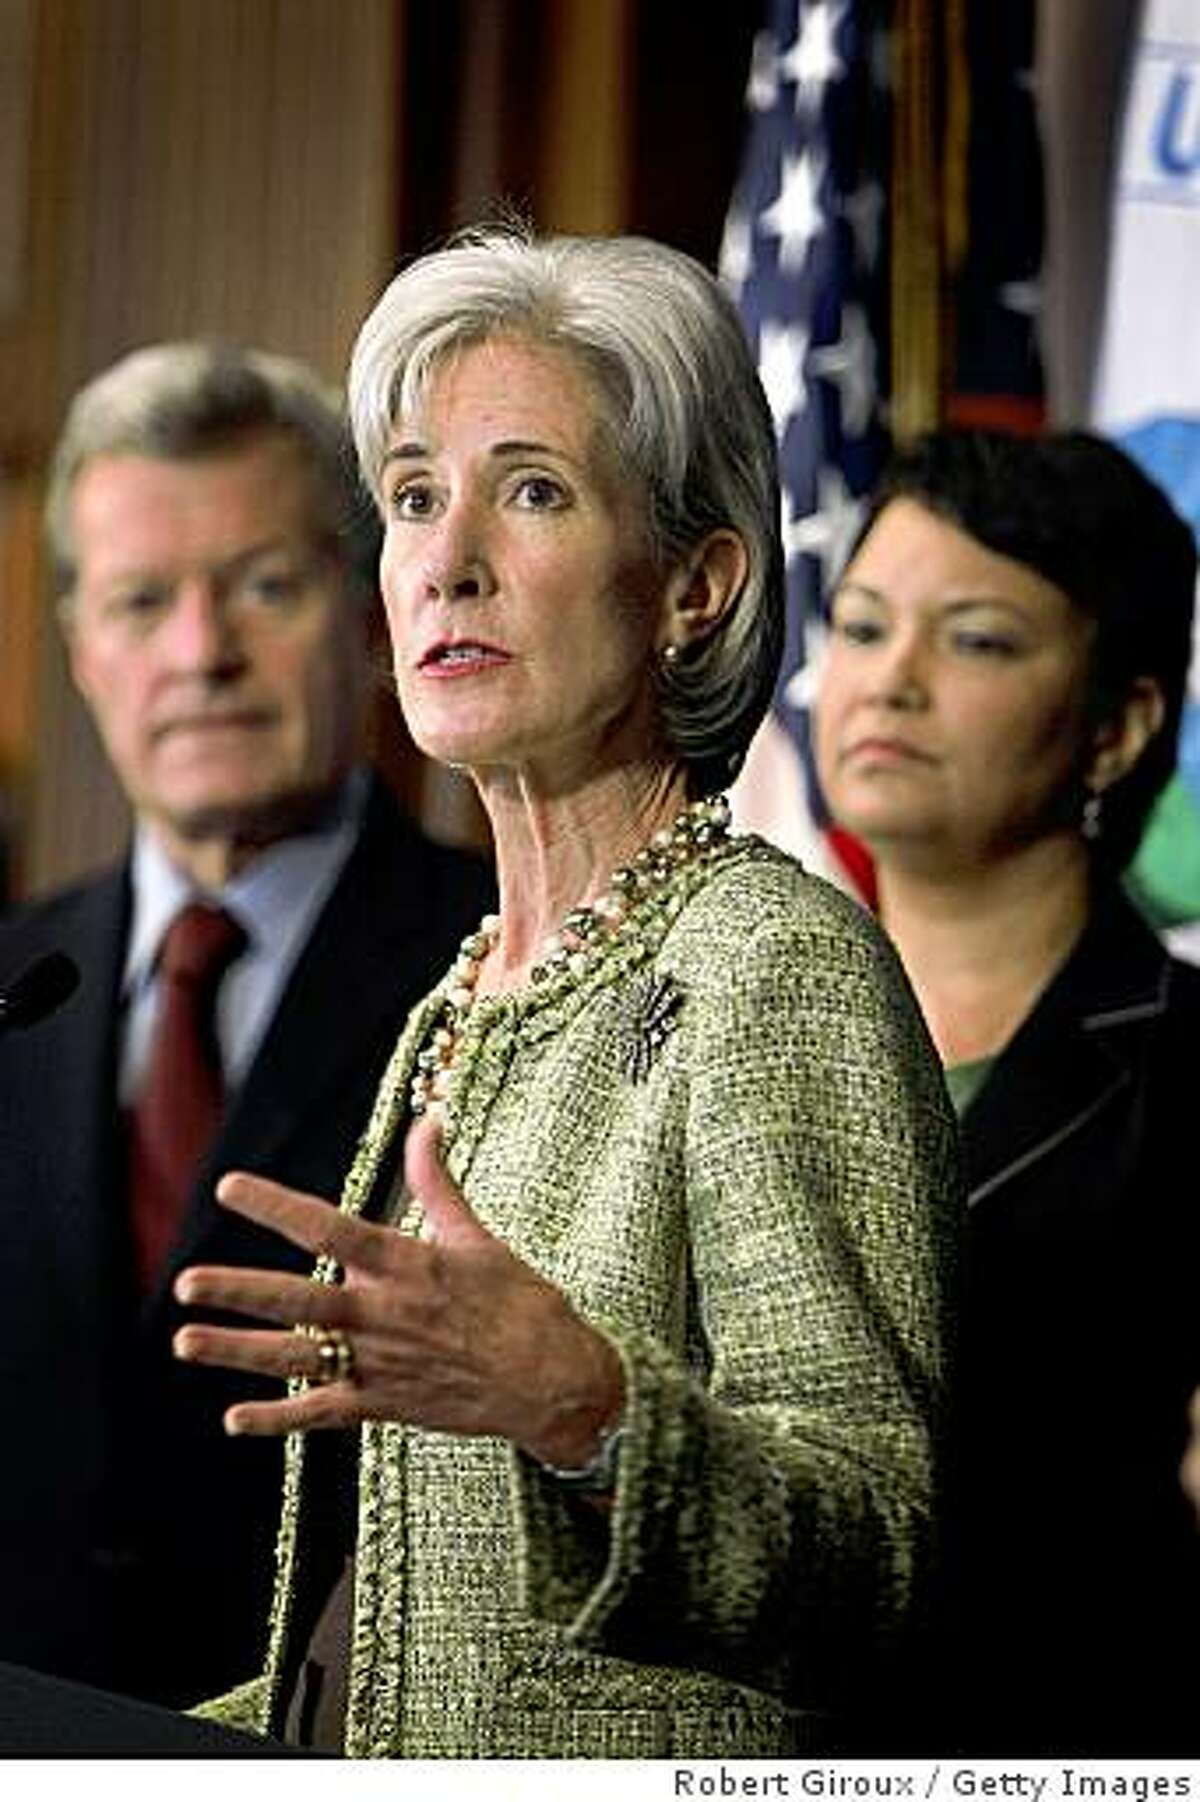 WASHINGTON - JUNE 17: Health and Human Services Secretary Kathleen Sebelius (C) speaks as Senator Max Baucu (D-MT) (L) and EPA Administrator Lisa Jackson listen on June 17, 2009 in Washington, DC. The EPA announced the agency has determined that a public health emergency exists at the Libby asbestos site in northwest Montana. (Photo by Robert Giroux/Getty Images)